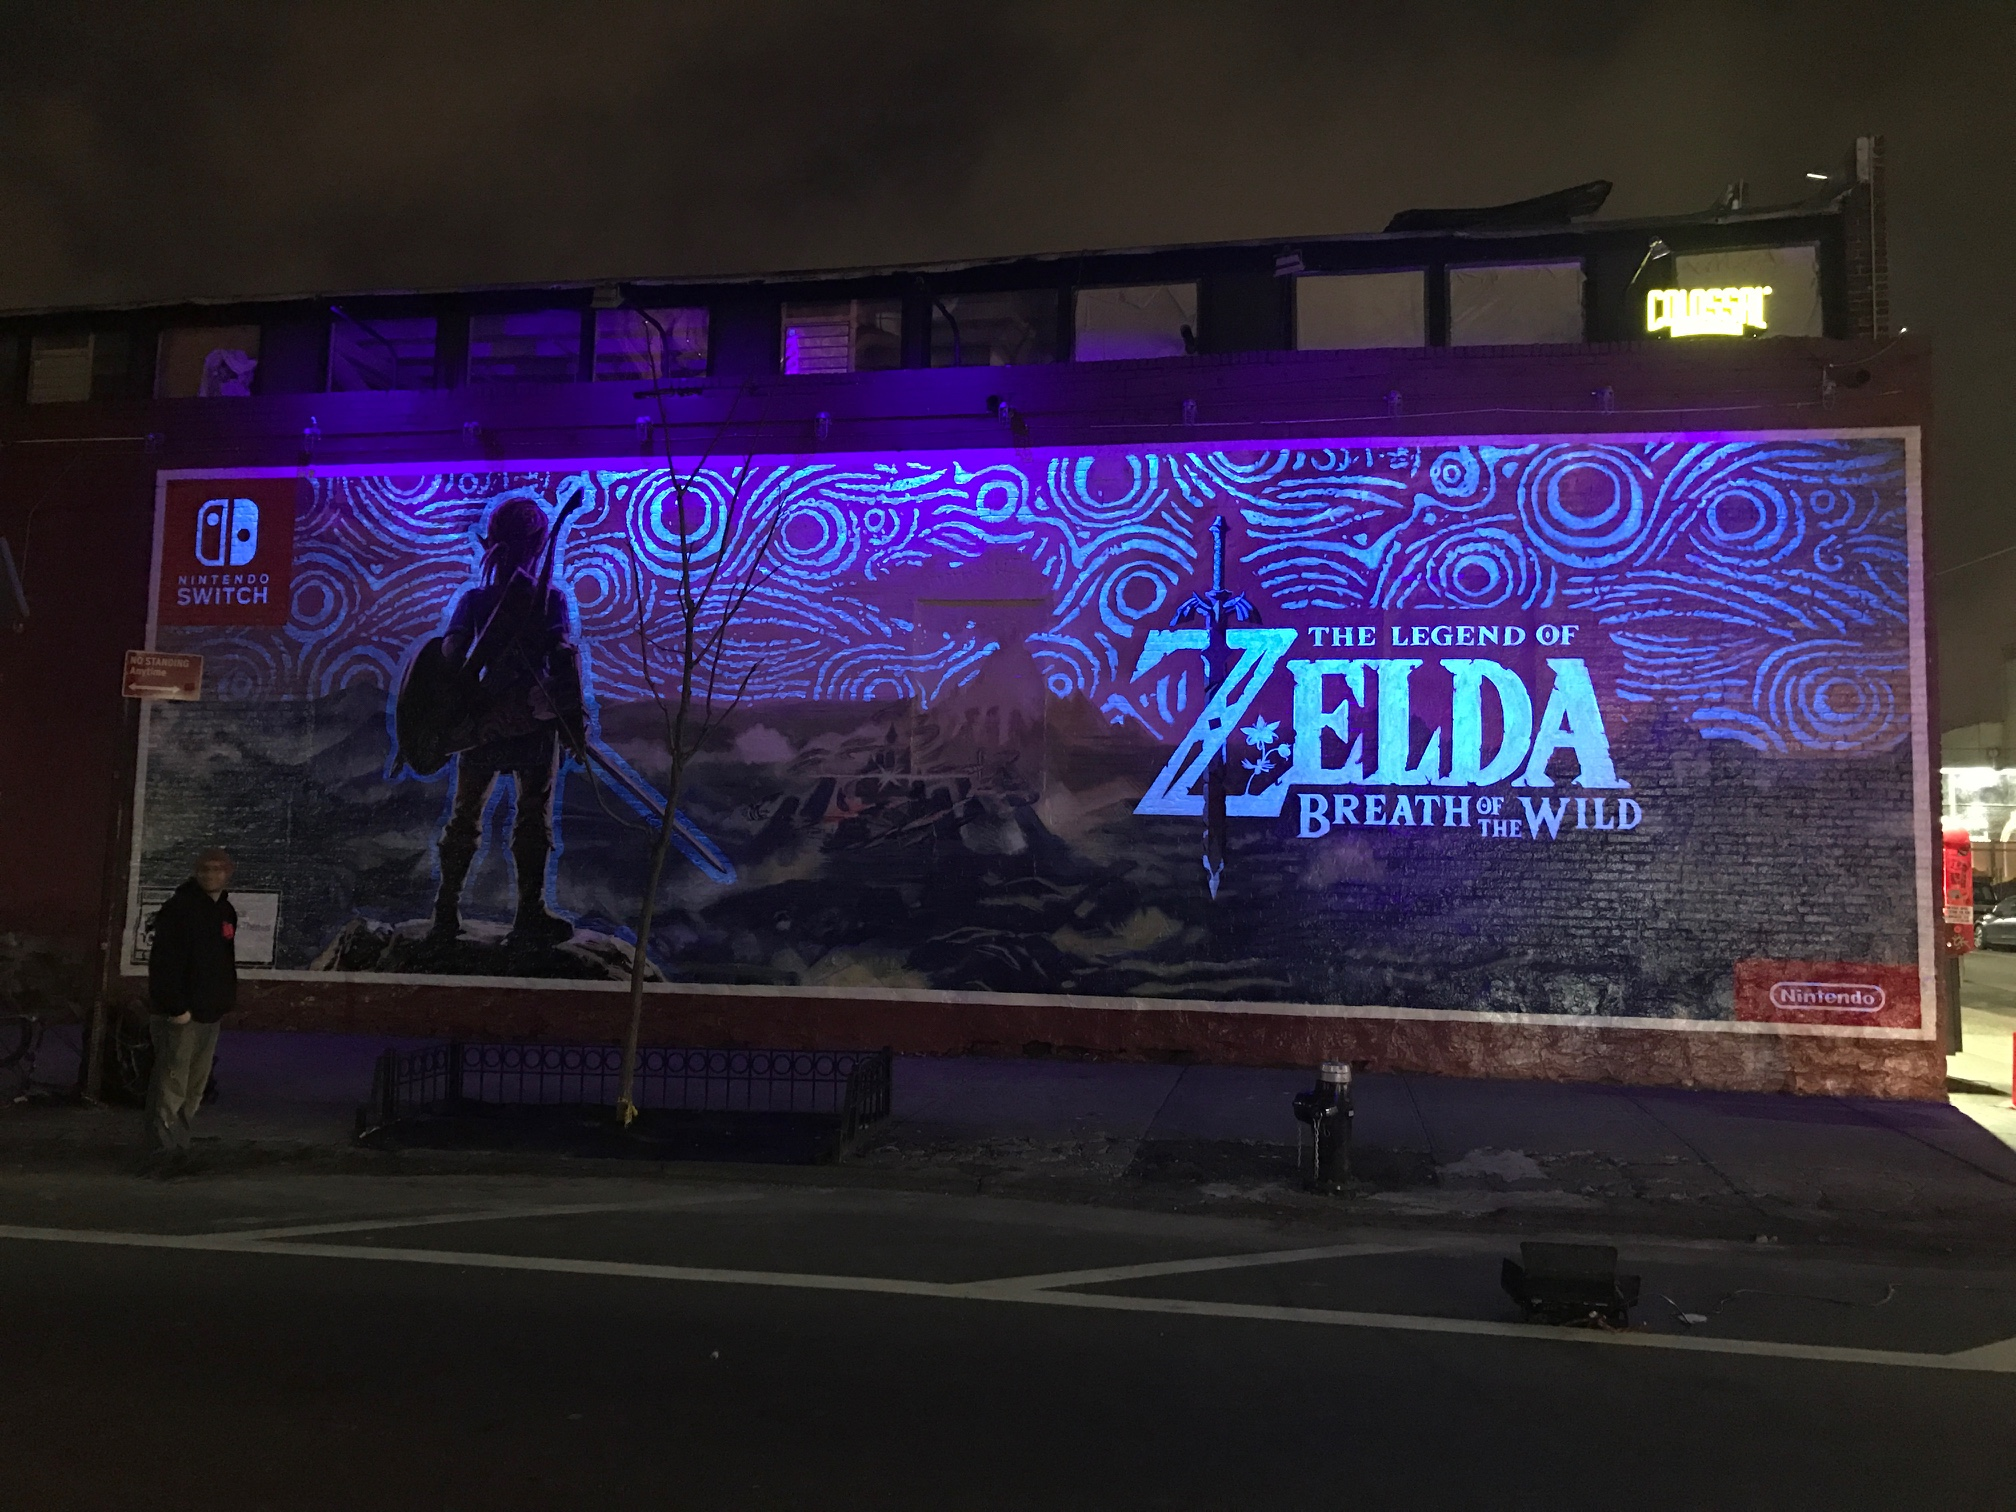 Man, that mural is killer either way, but that night shot is pretty amazing. Man, sad to know this is going to be taken down at some point!